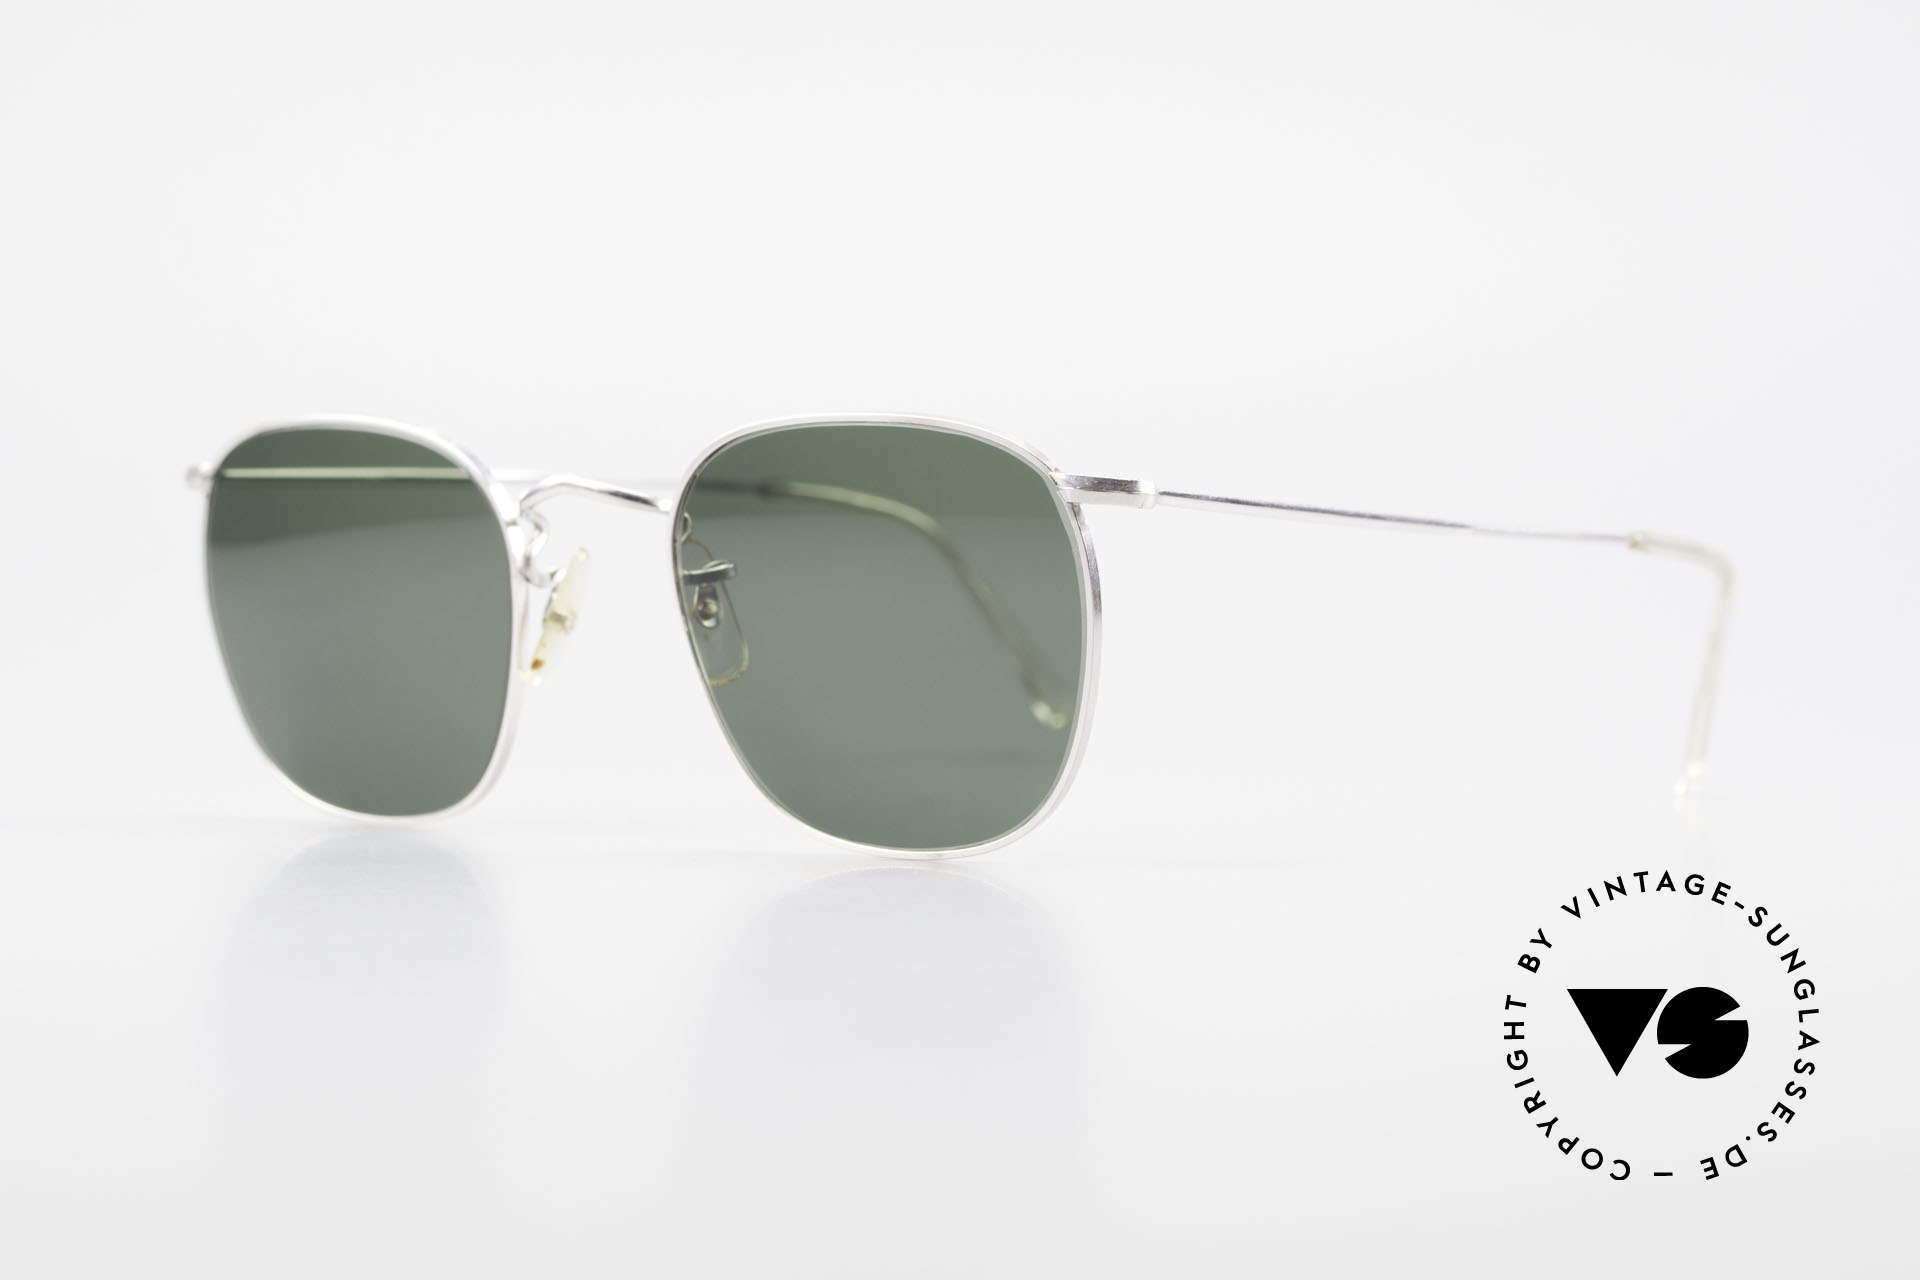 Algha Quadra 50/22 Old Gold Filled Sunglasses, finest manufacturing (handmade in England, UK), Made for Men